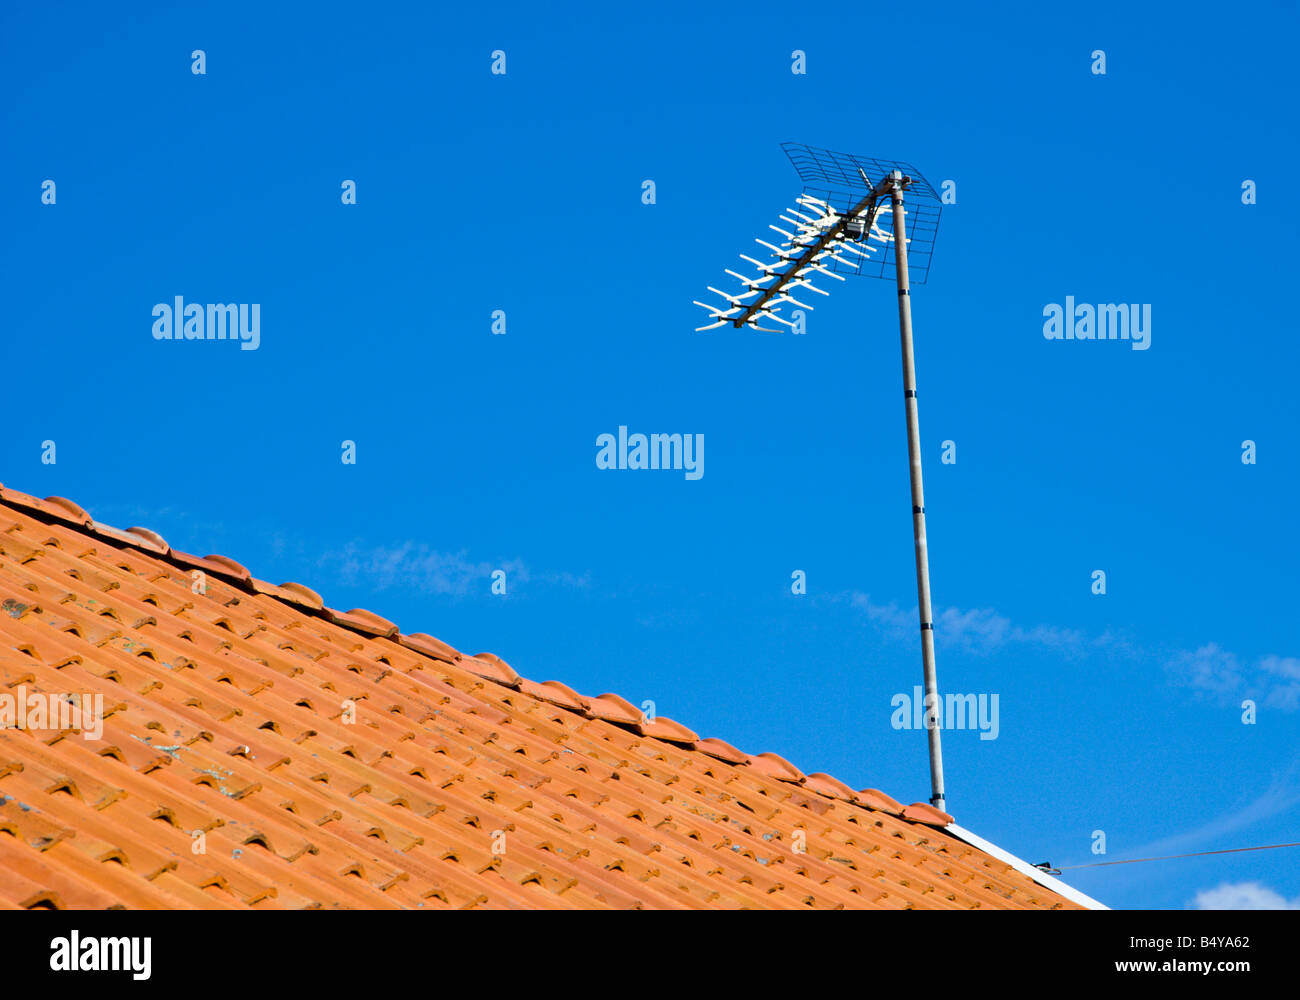 Antenna on summer house - Stock Image